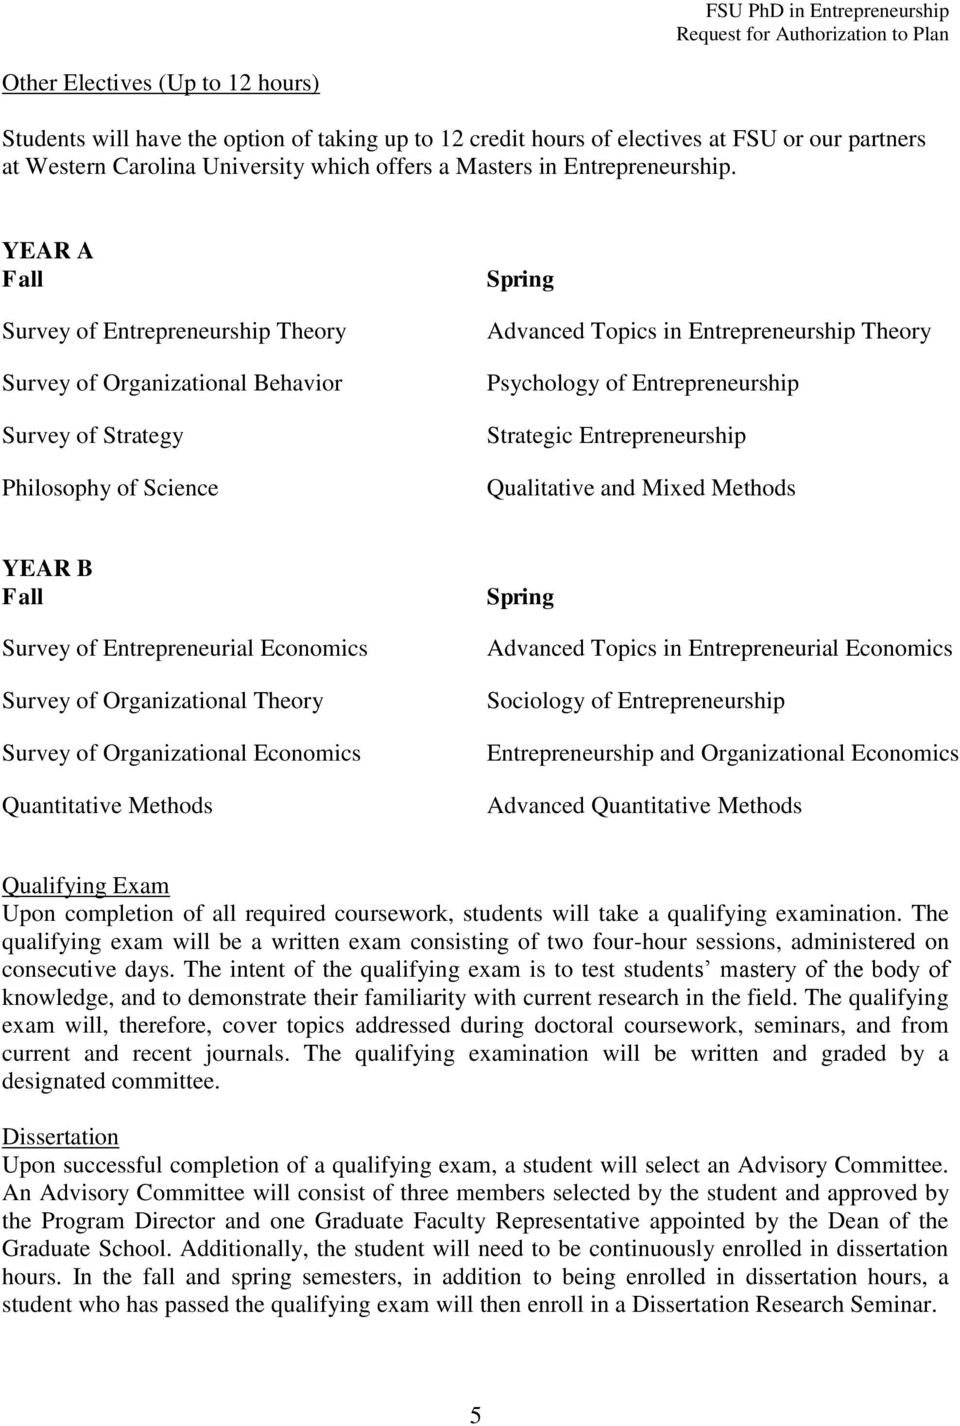 YEAR A Fall Survey of Entrepreneurship Theory Survey of Organizational Behavior Survey of Strategy Philosophy of Science Spring Advanced Topics in Entrepreneurship Theory Psychology of